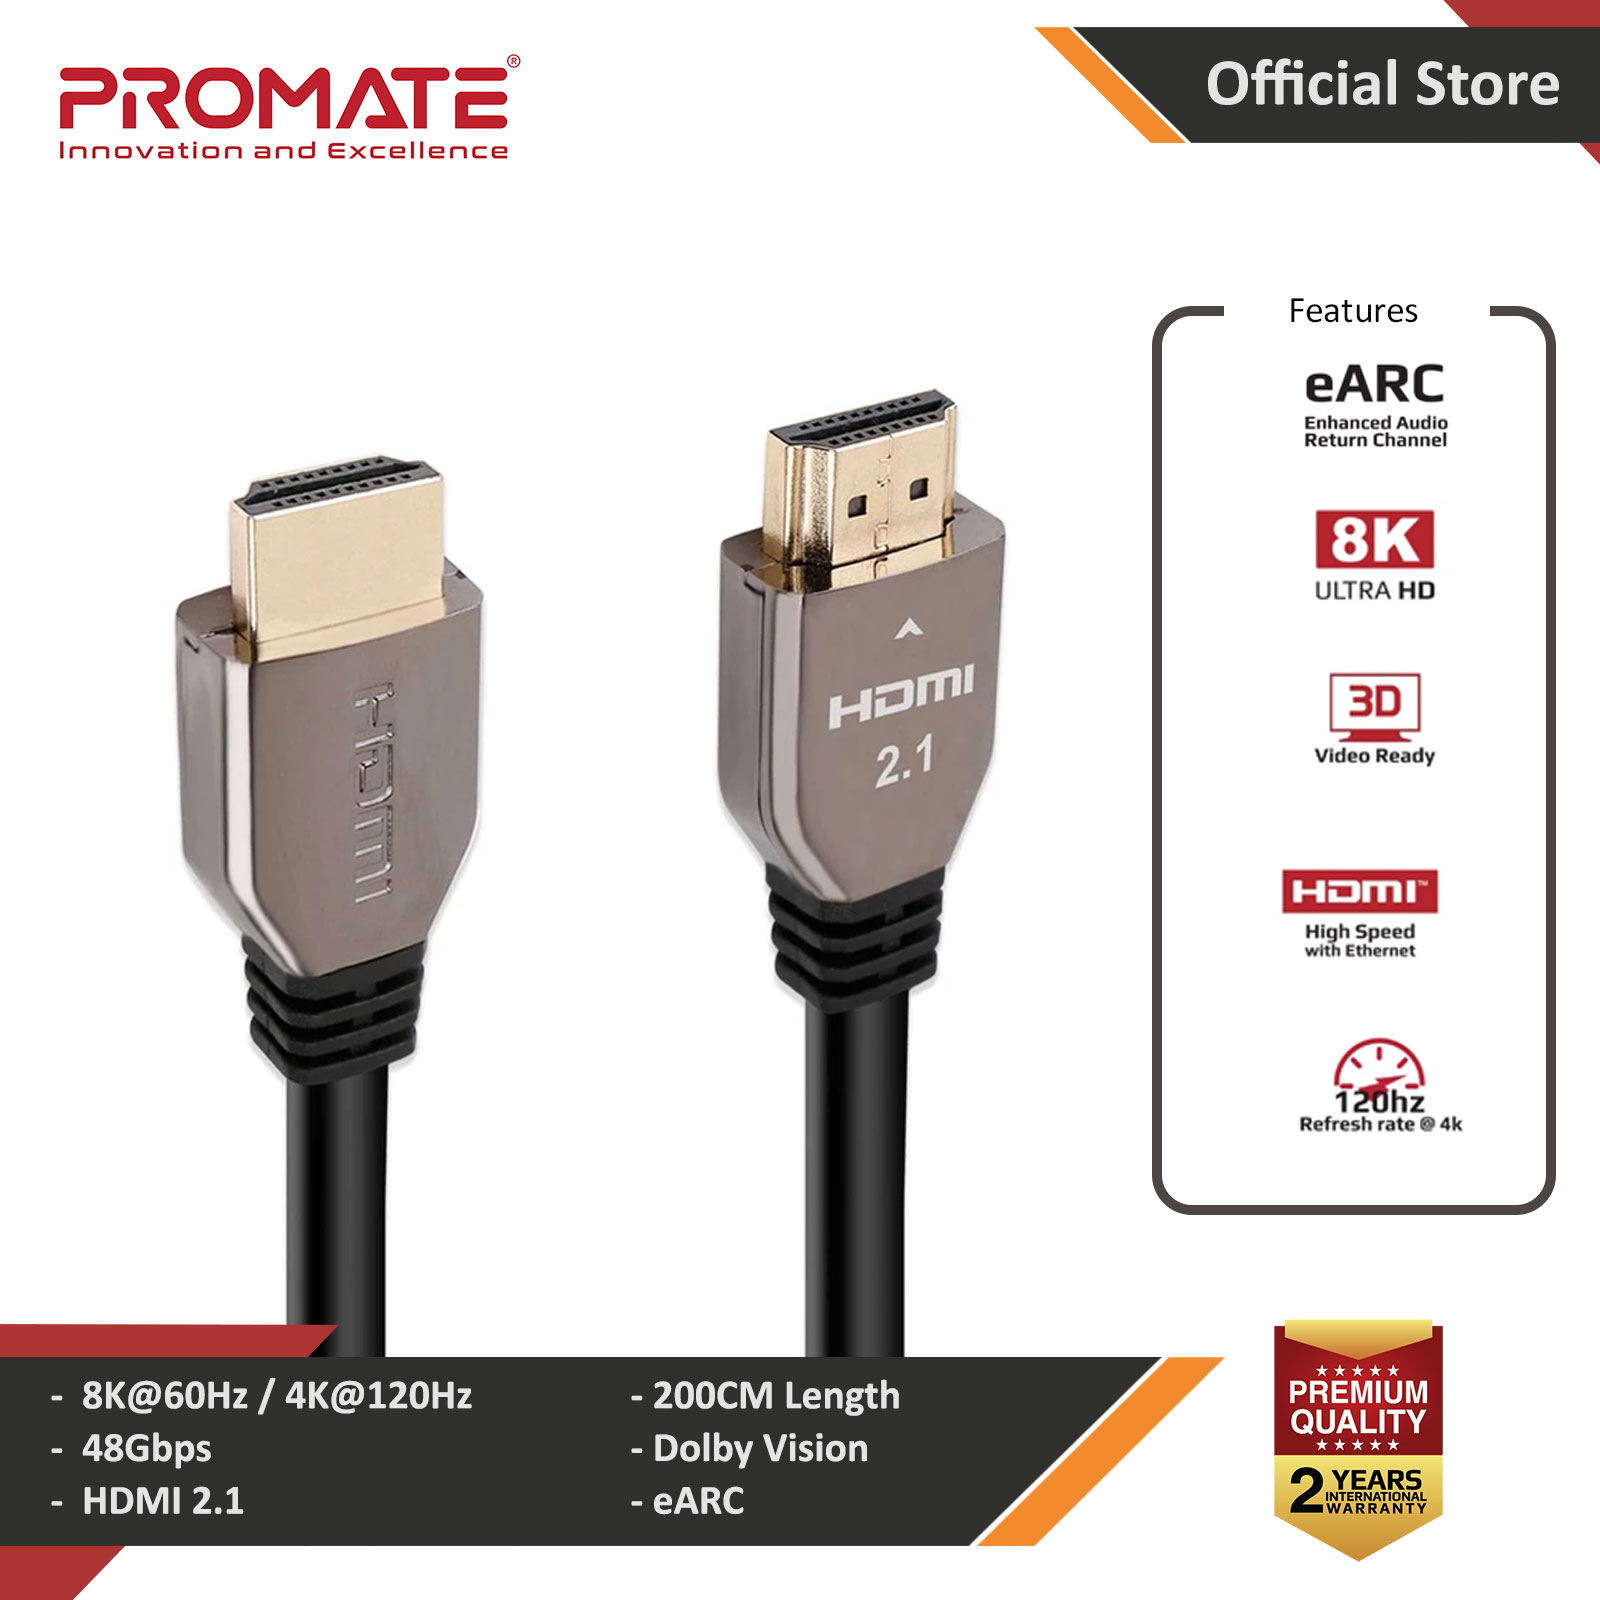 Picture of PROMATE ProLink8K-200 Ultra HD High Speed 8K HDMI 2.1 Audio Video Cable HDR Colour Support eARC Connectivity Dolby Vision 2 meter 200cm Cable Length Red Design- Red Design Cases, Red Design Covers, iPad Cases and a wide selection of Red Design Accessories in Malaysia, Sabah, Sarawak and Singapore